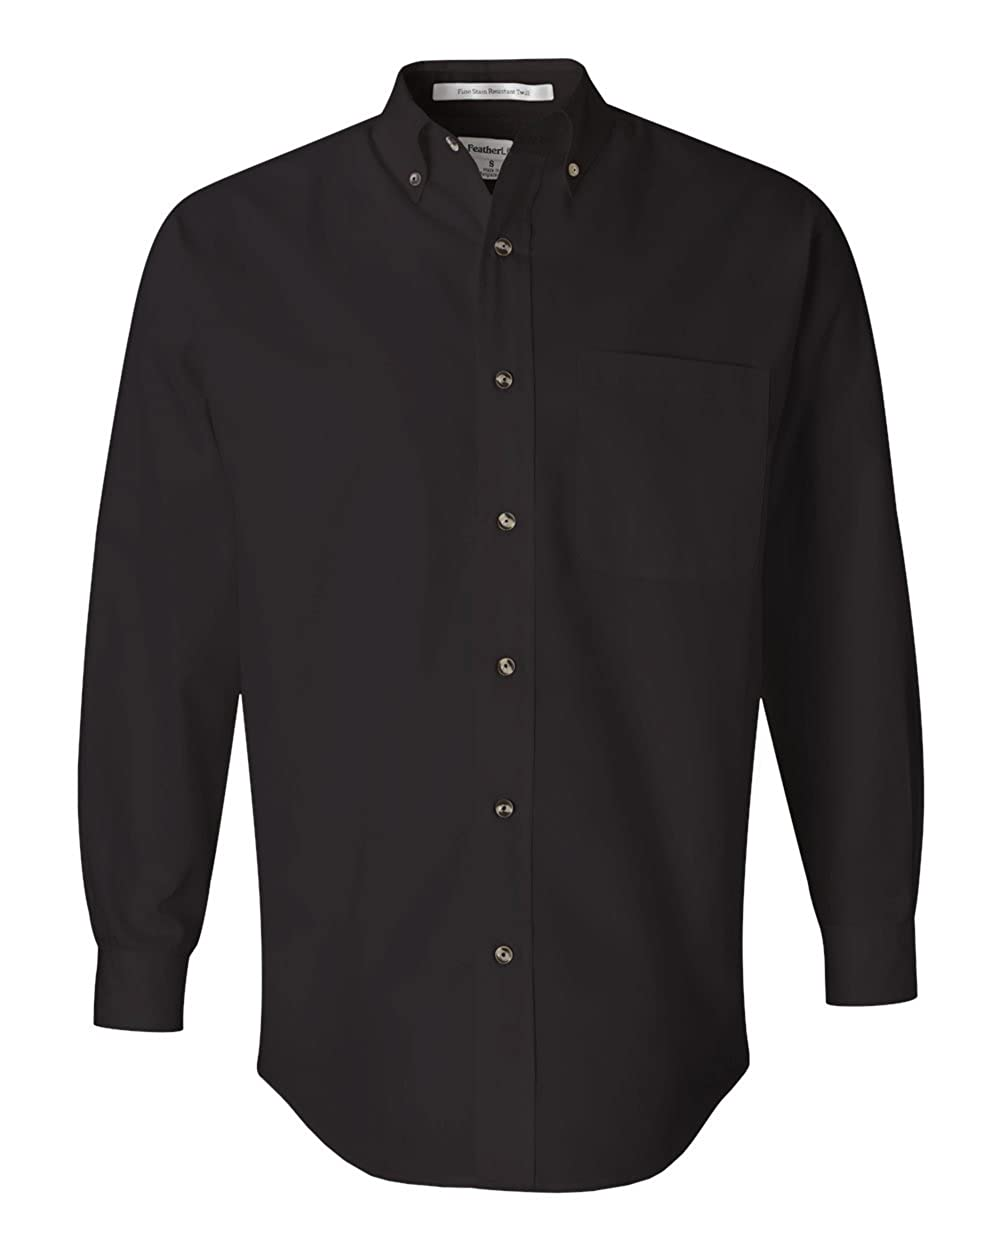 FeatherLite L//S Stain Resistant Twill Shirt 3281